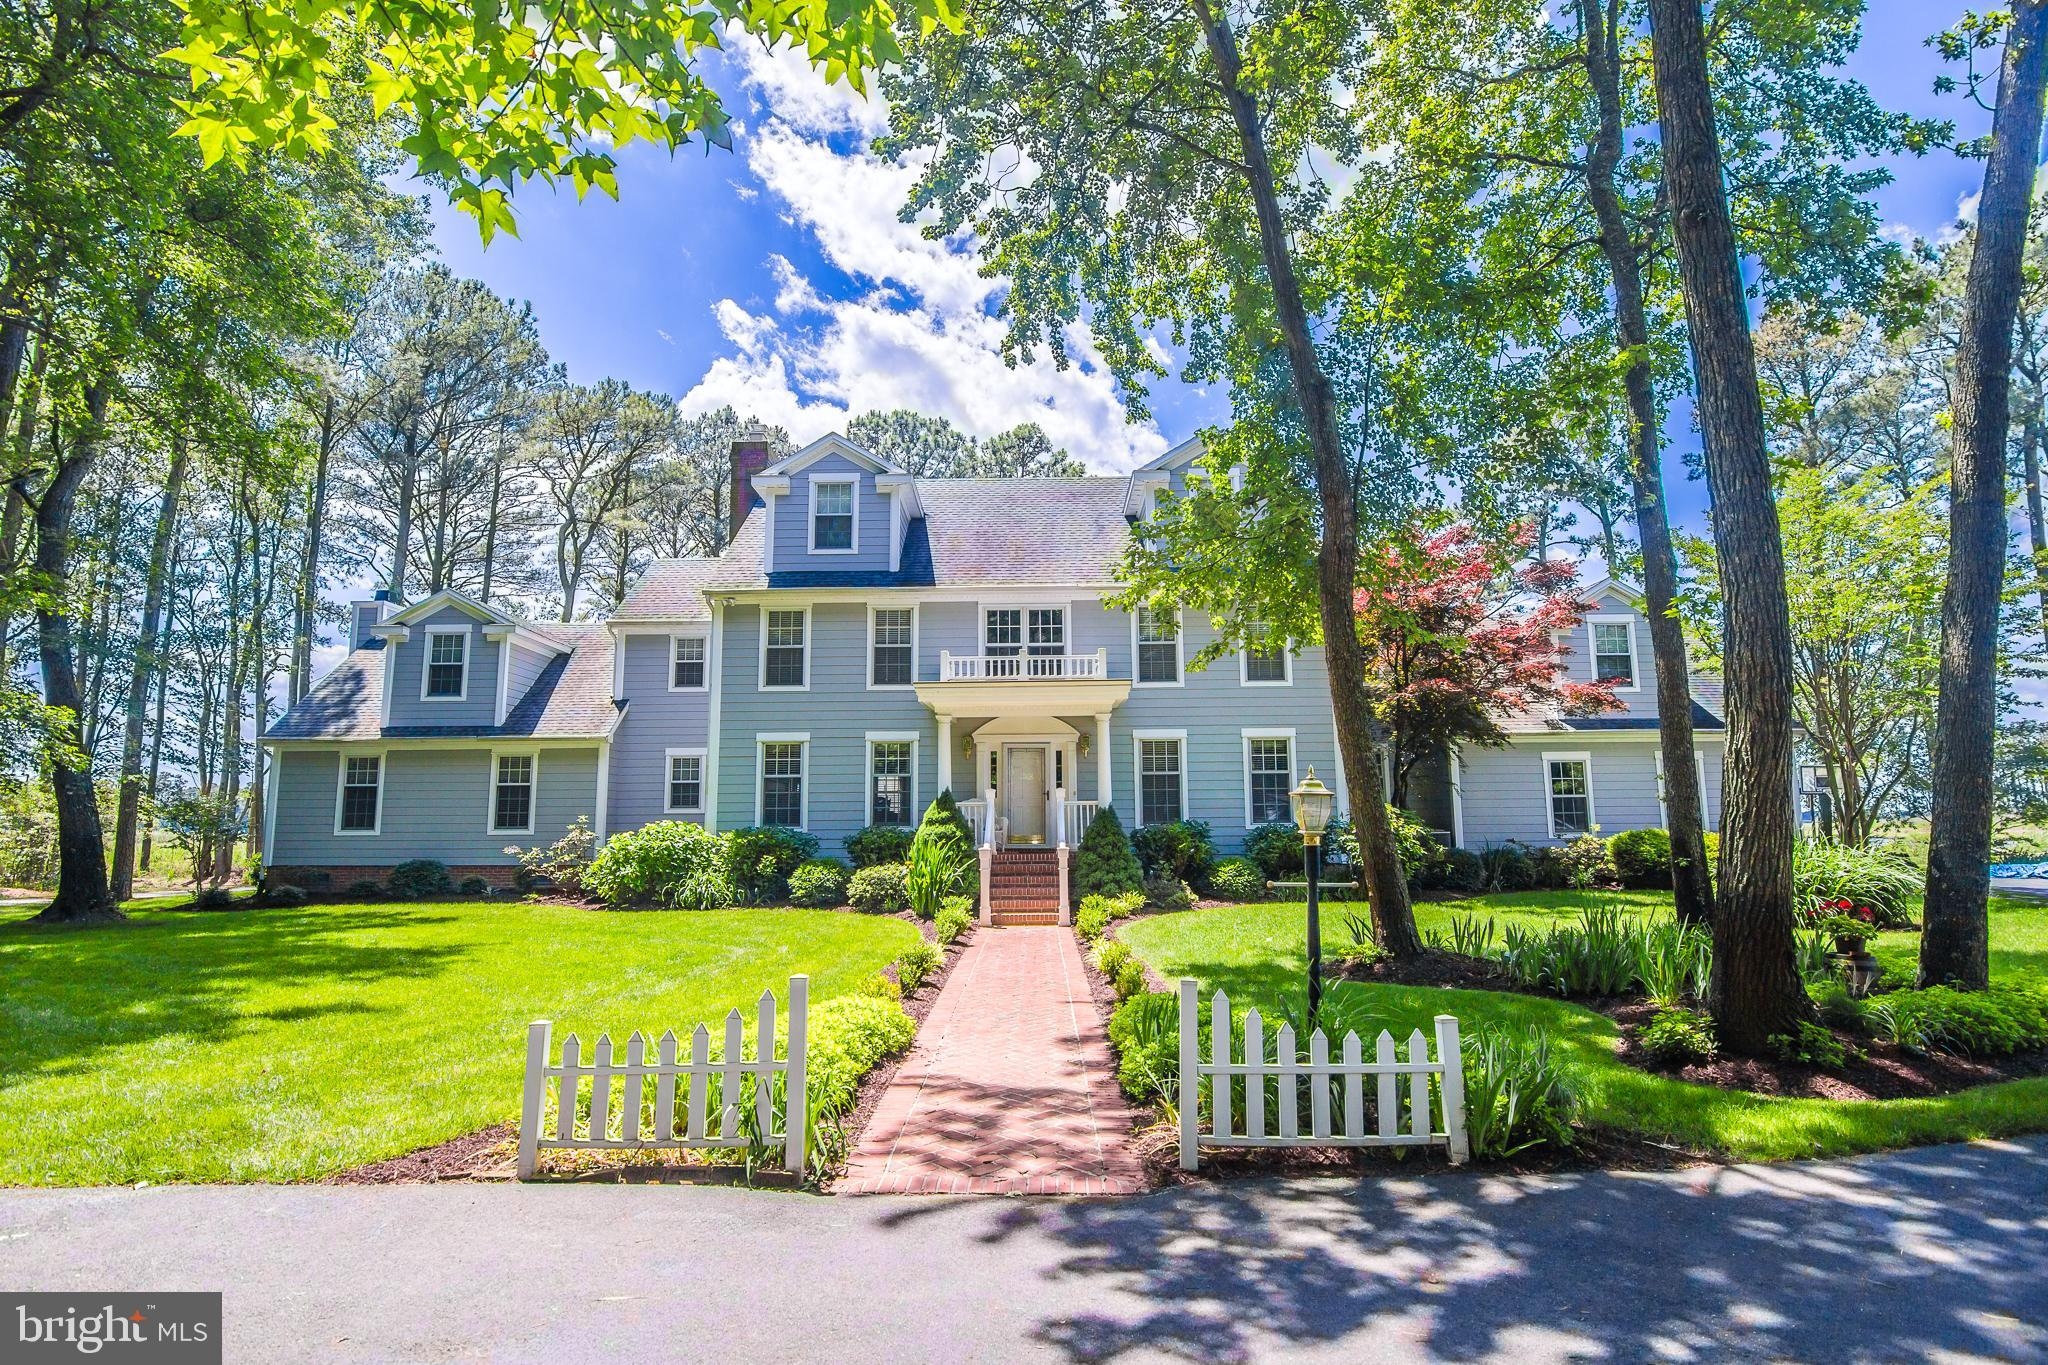 7403 S POINT ROAD, OCEAN CITY, MD 21842